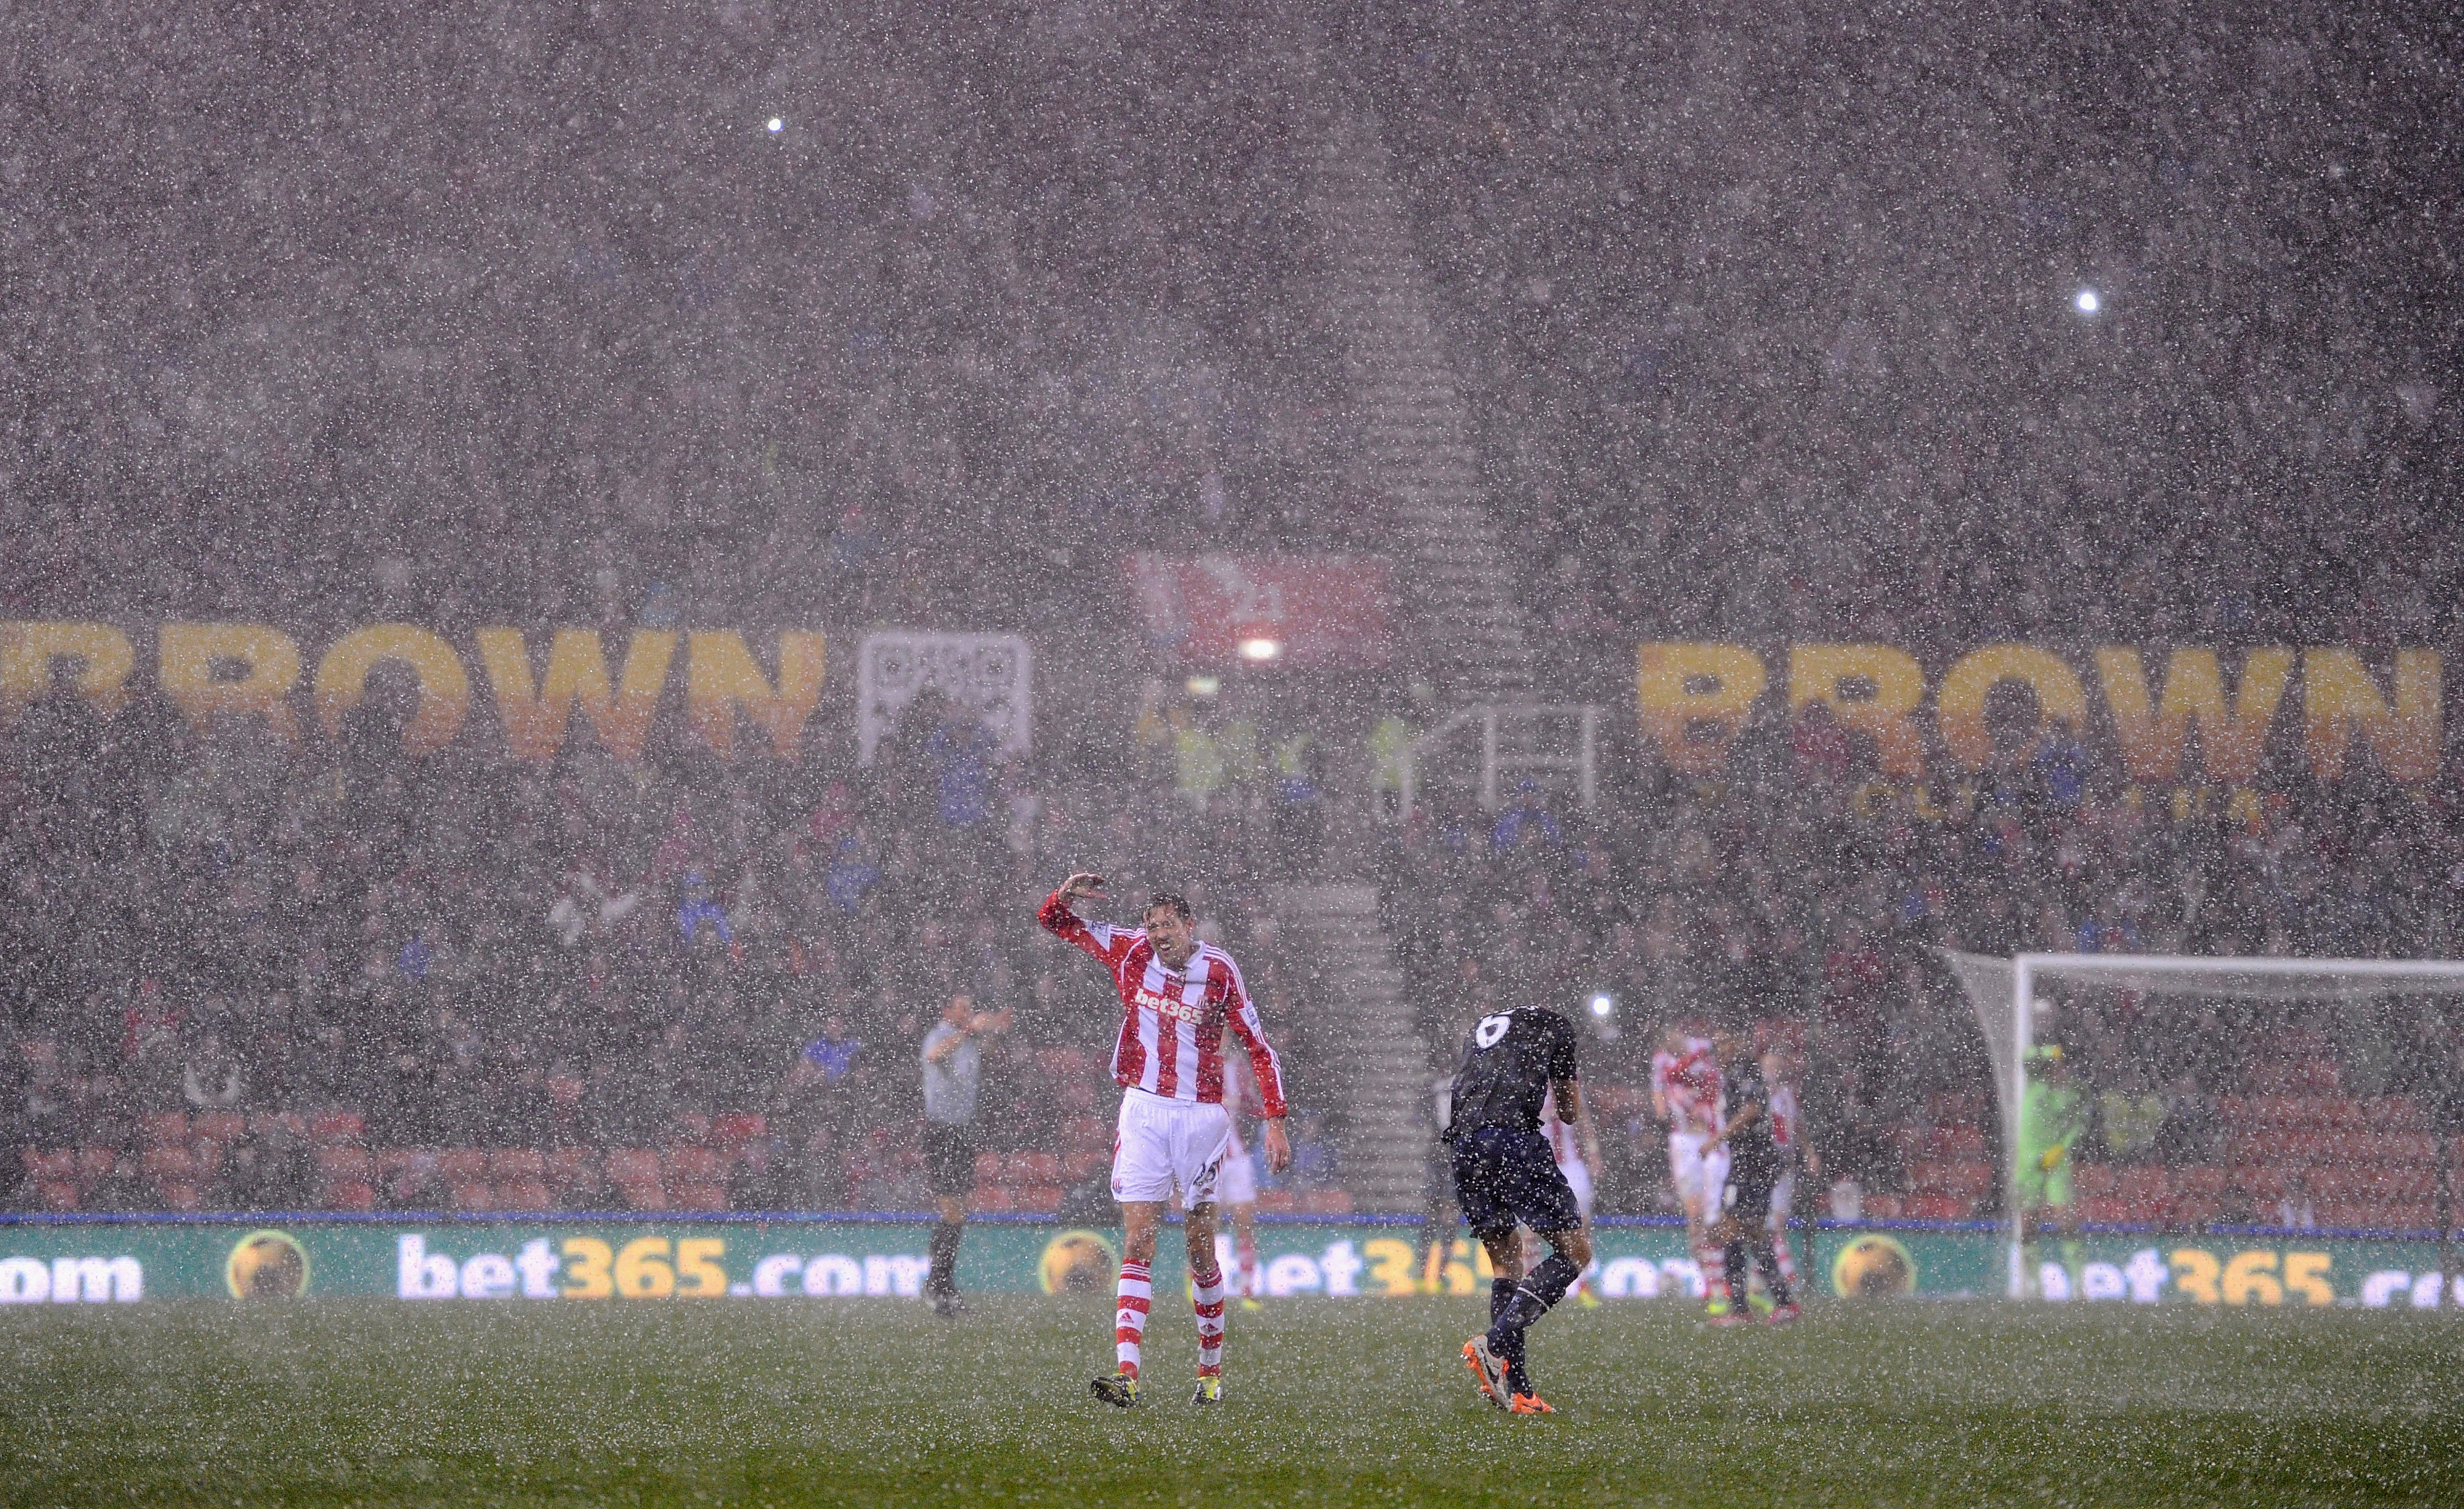 Stoke City vs. Manchester United: Final score 0-2, United dump Potters out of cup